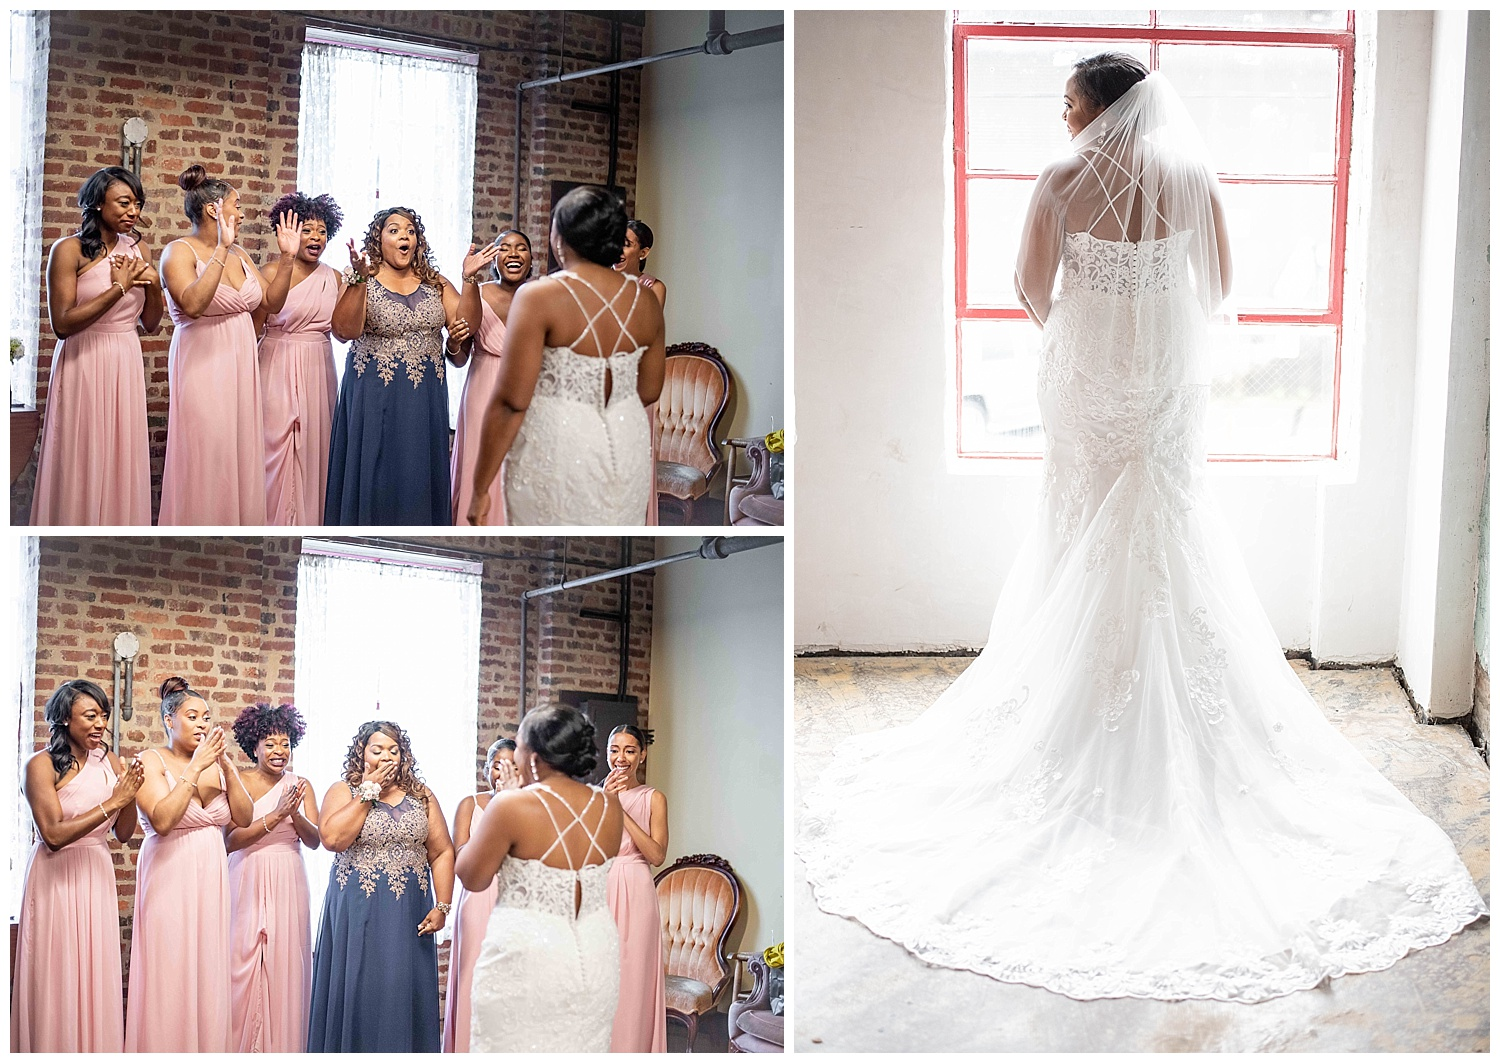 Just look at how Aquilla's mom and bridesmaids reacted to seeing her in that dress!